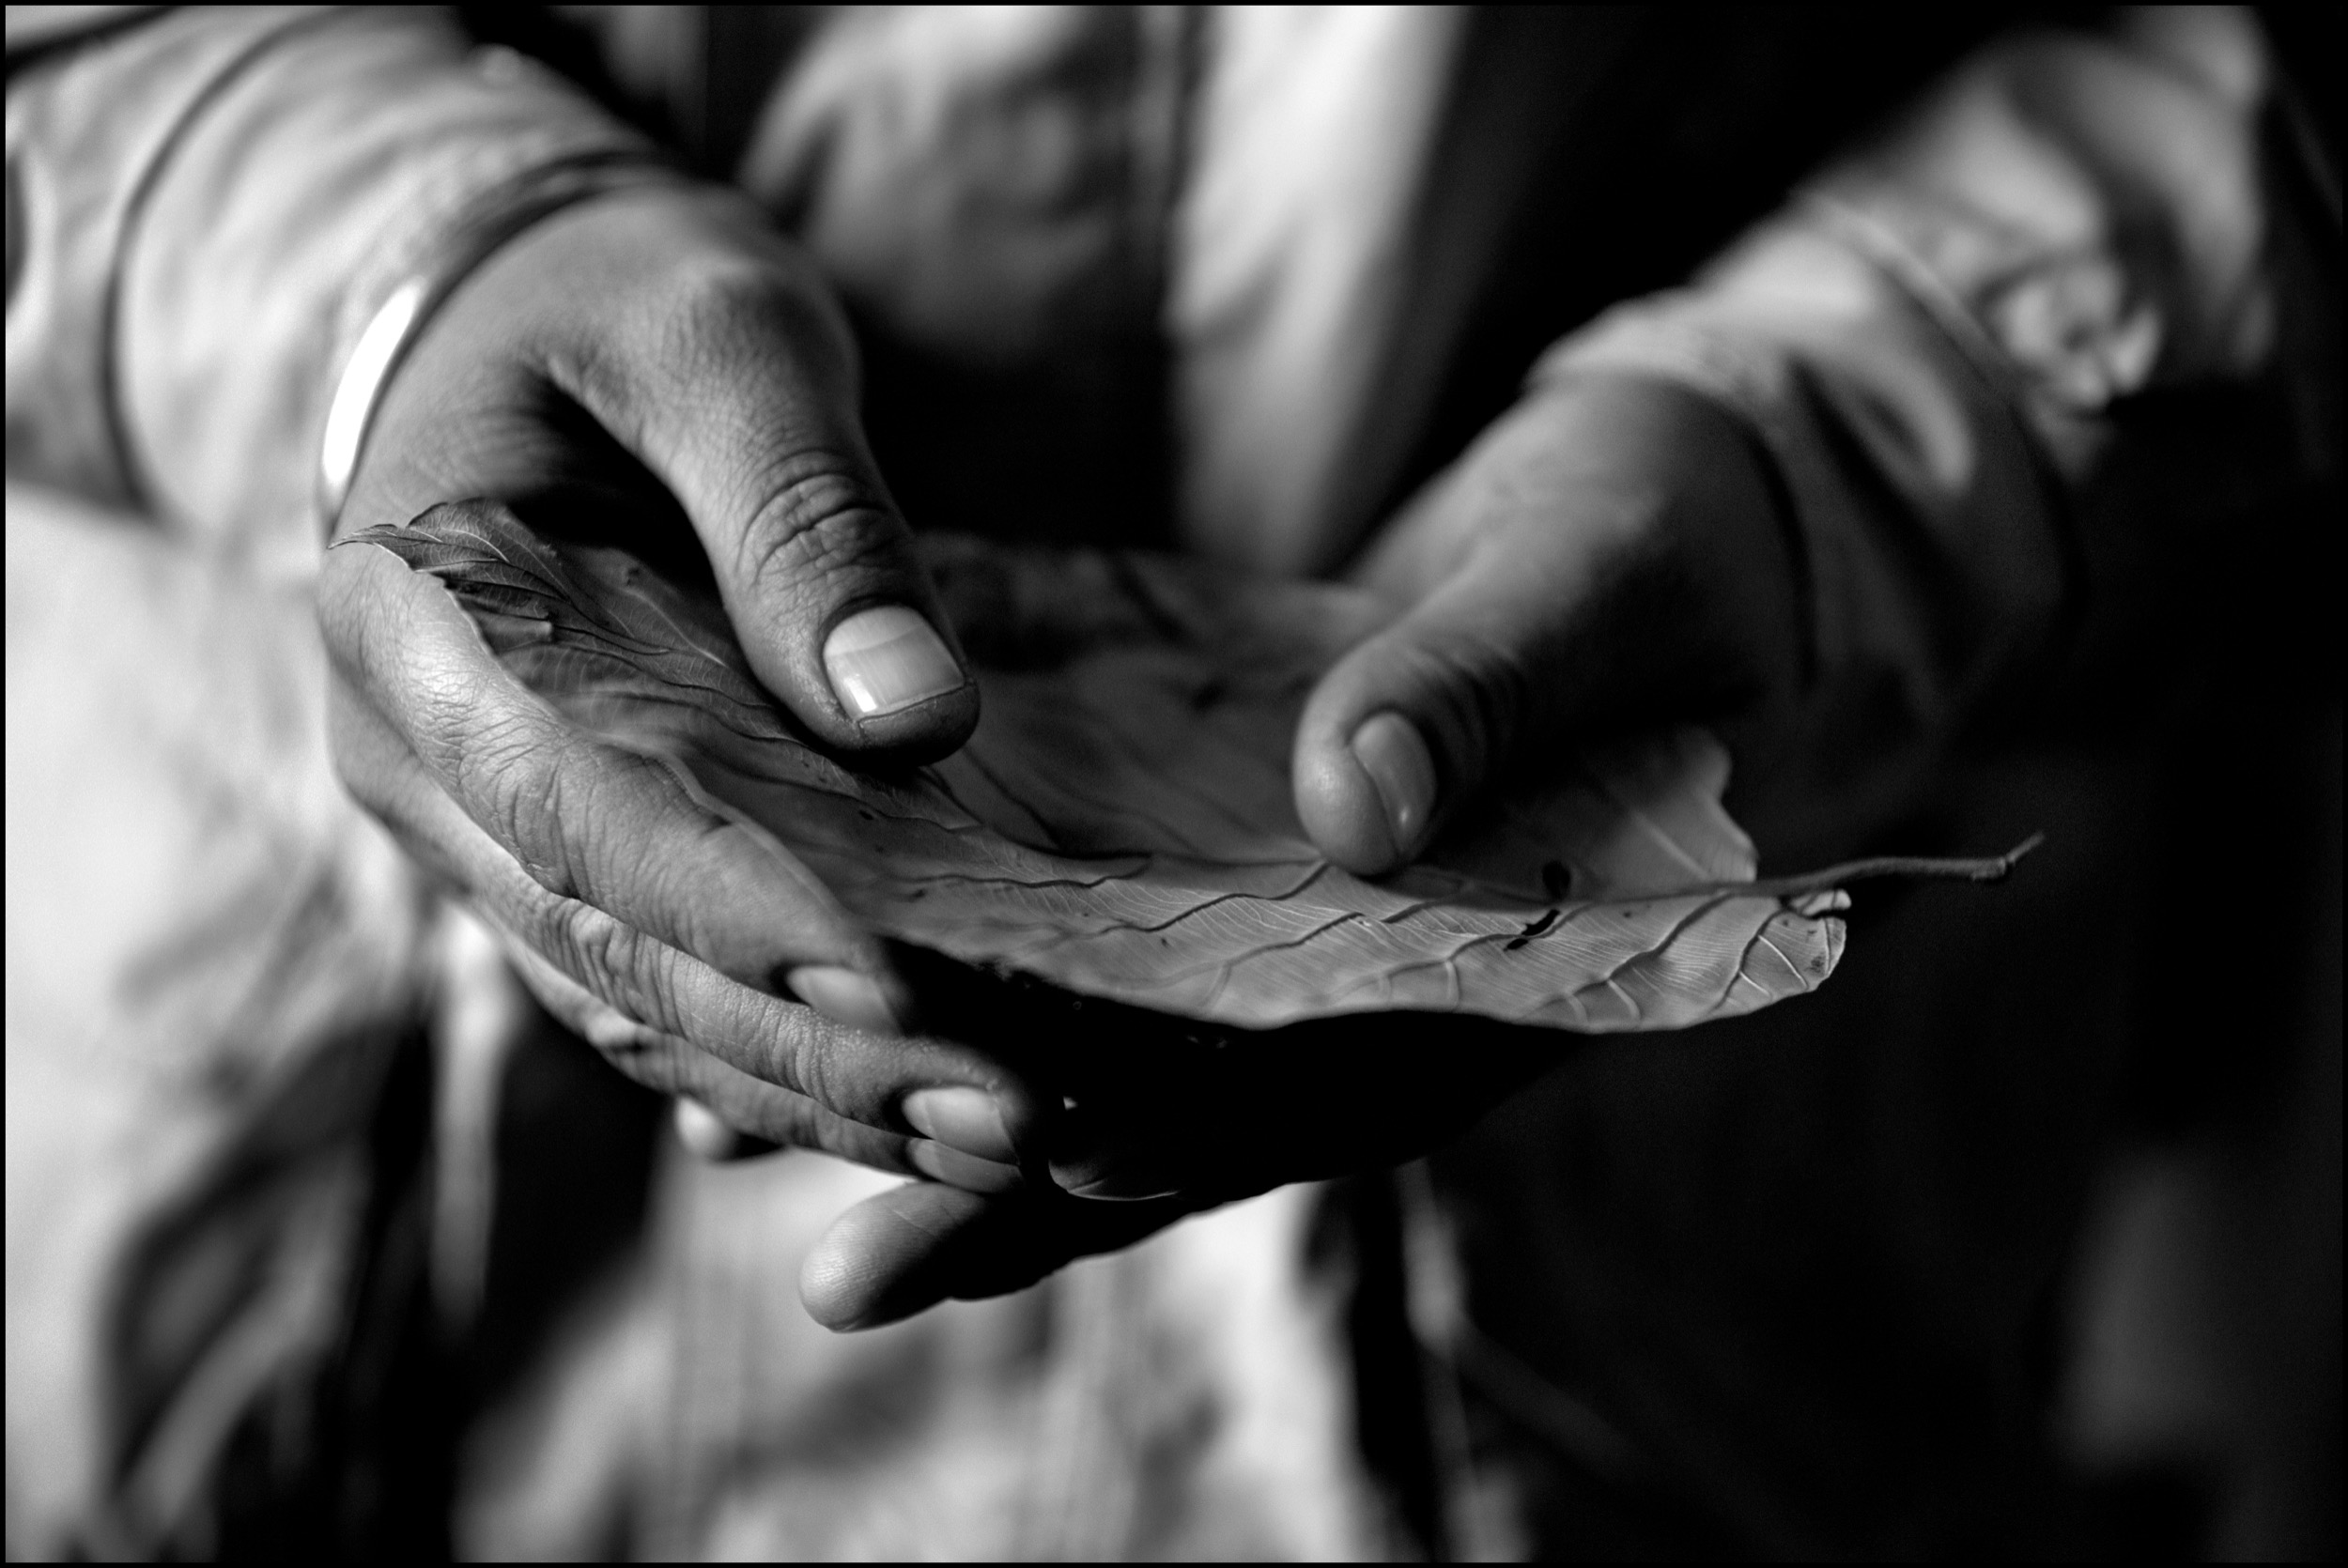 In the Golden Temple, the Sikhs' most sacred place, a pilgrim holds a leaf to receive the morning darshan (food offering); Amritsar, India.